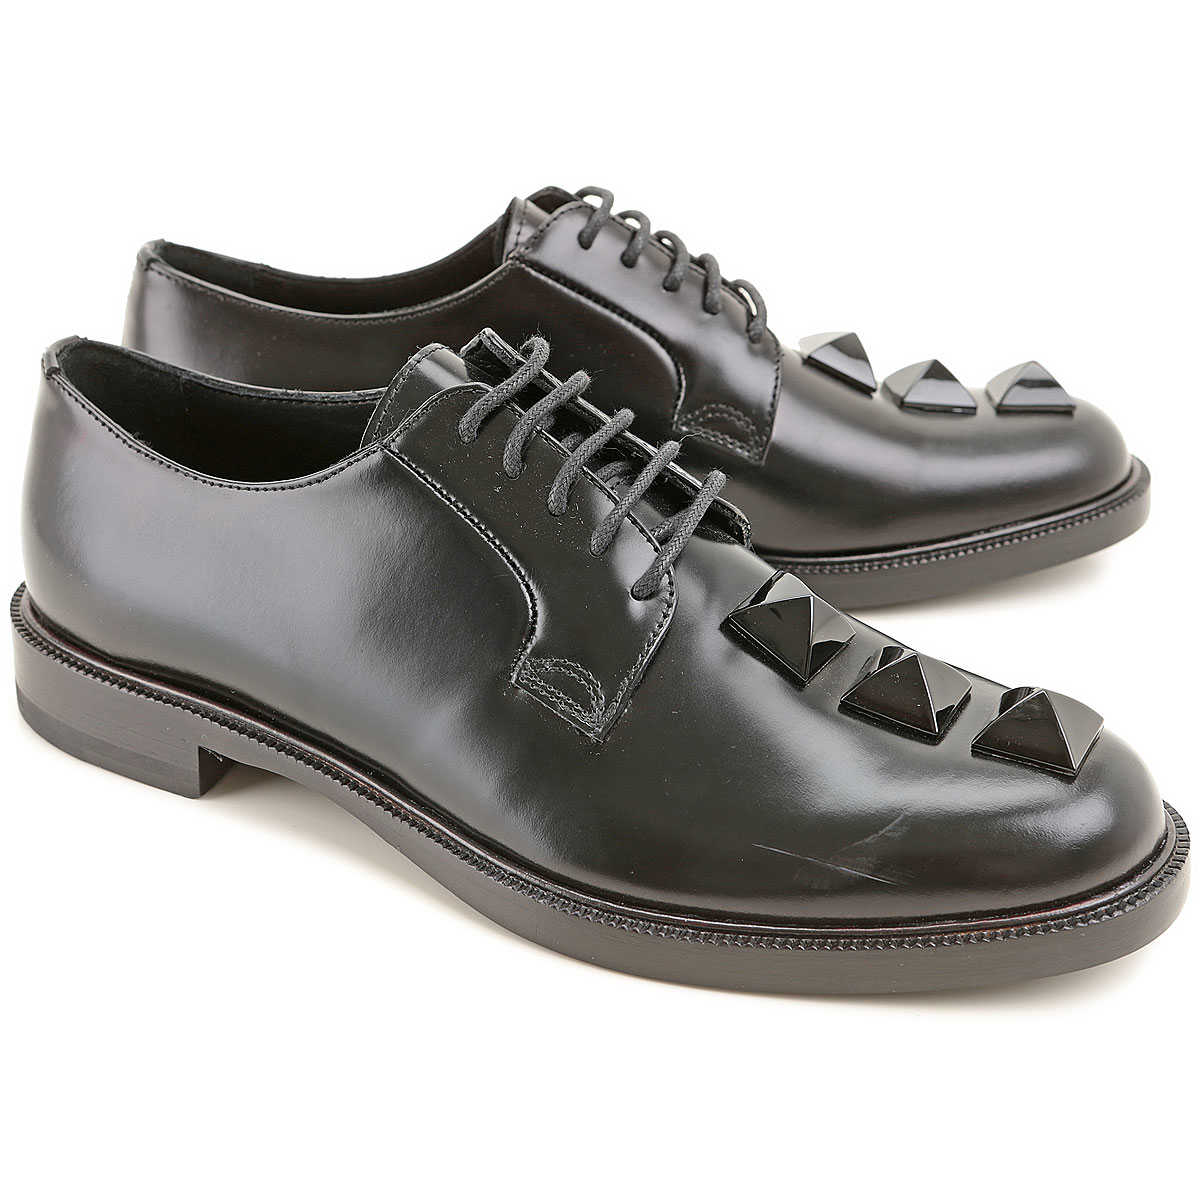 Giacomorelli Lace Up Shoes for Men Oxfords Derbies and Brogues On Sale in Outlet USA - GOOFASH